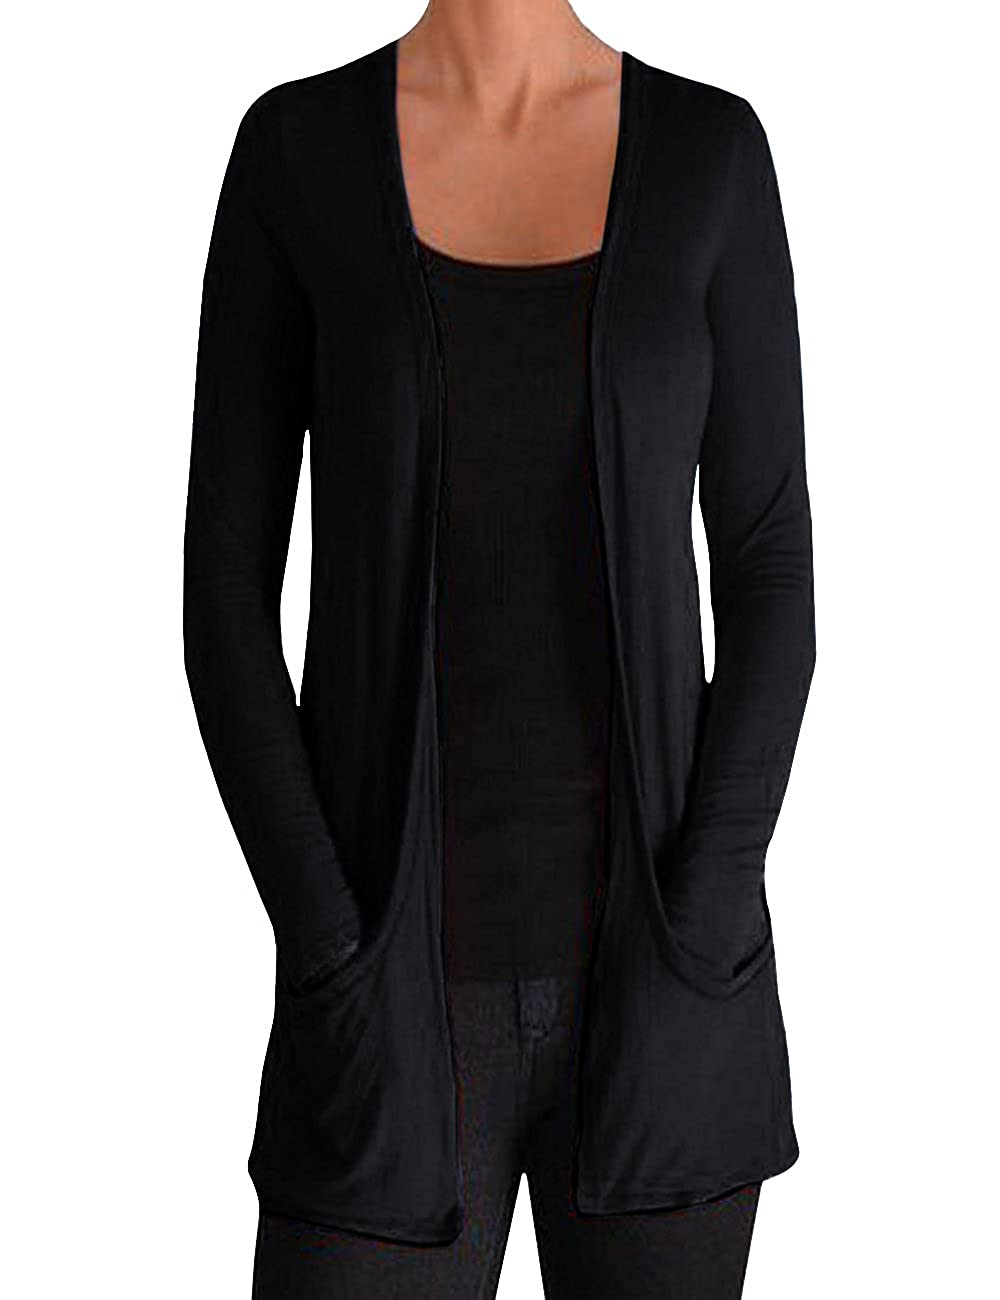 ISASSY Women's Ladies Long Sleeve Pocket Boyfriend Cardigan Top